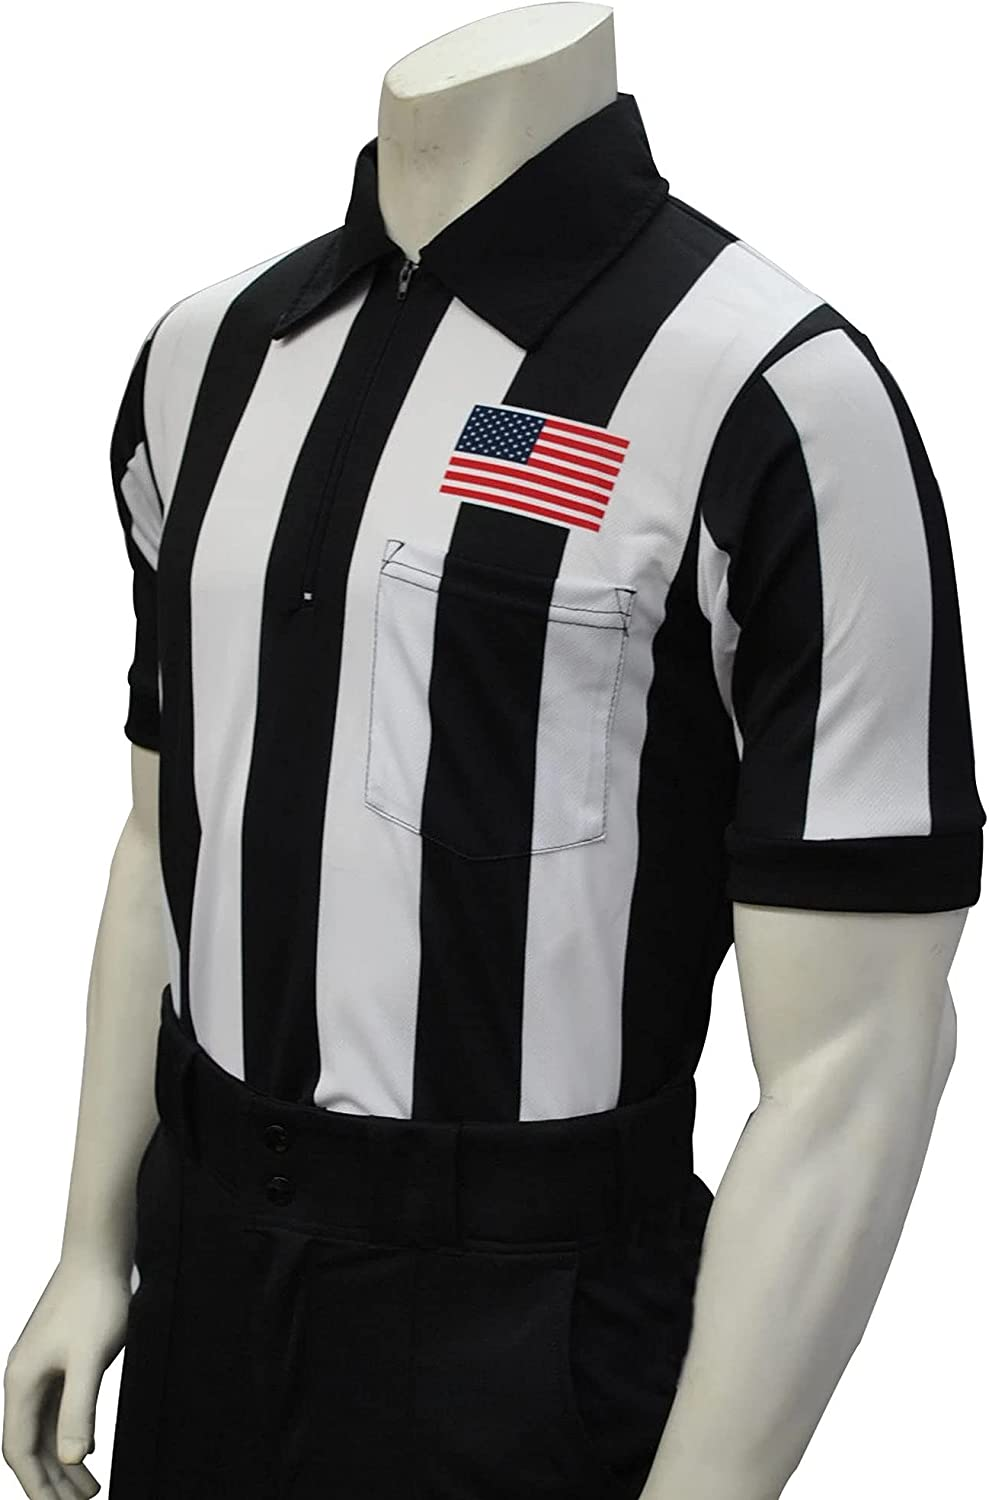 Smitty Official's Apparel Smitty Men's Short Sleeve Football Referee Shirt with 2 1/4 inch Stripes & USA Flag: Sports & Outdoors